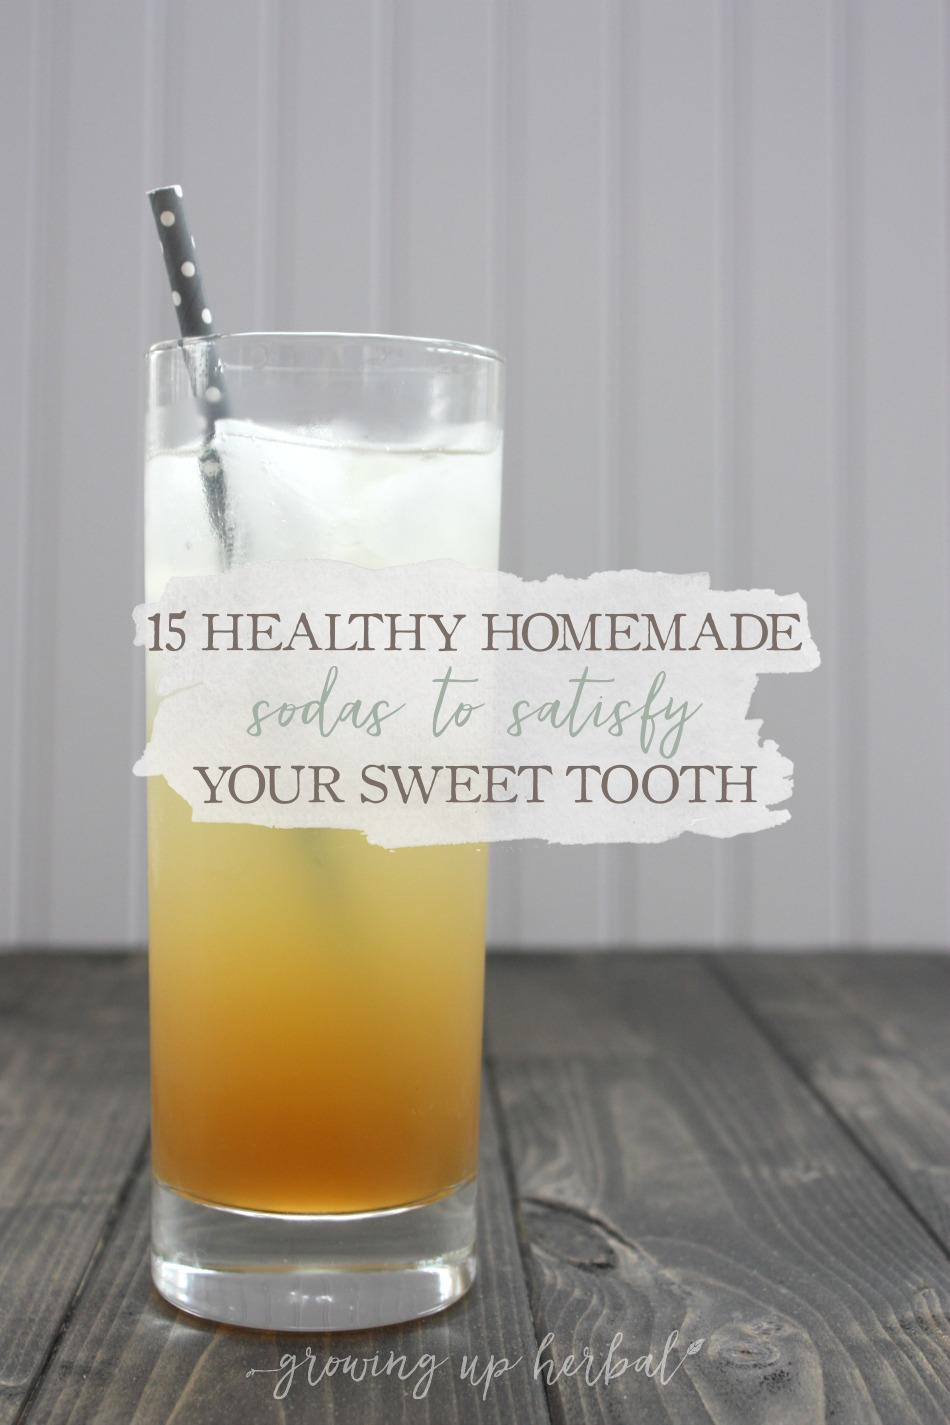 15 Healthy Homemade Sodas to Satisfy Your Sweet Tooth | Growing Up Herbal | If you're looking to make the switch from unhealthy sodas to healthier versions, look no more. Here are 15 healthy homemade sodas to get you started!